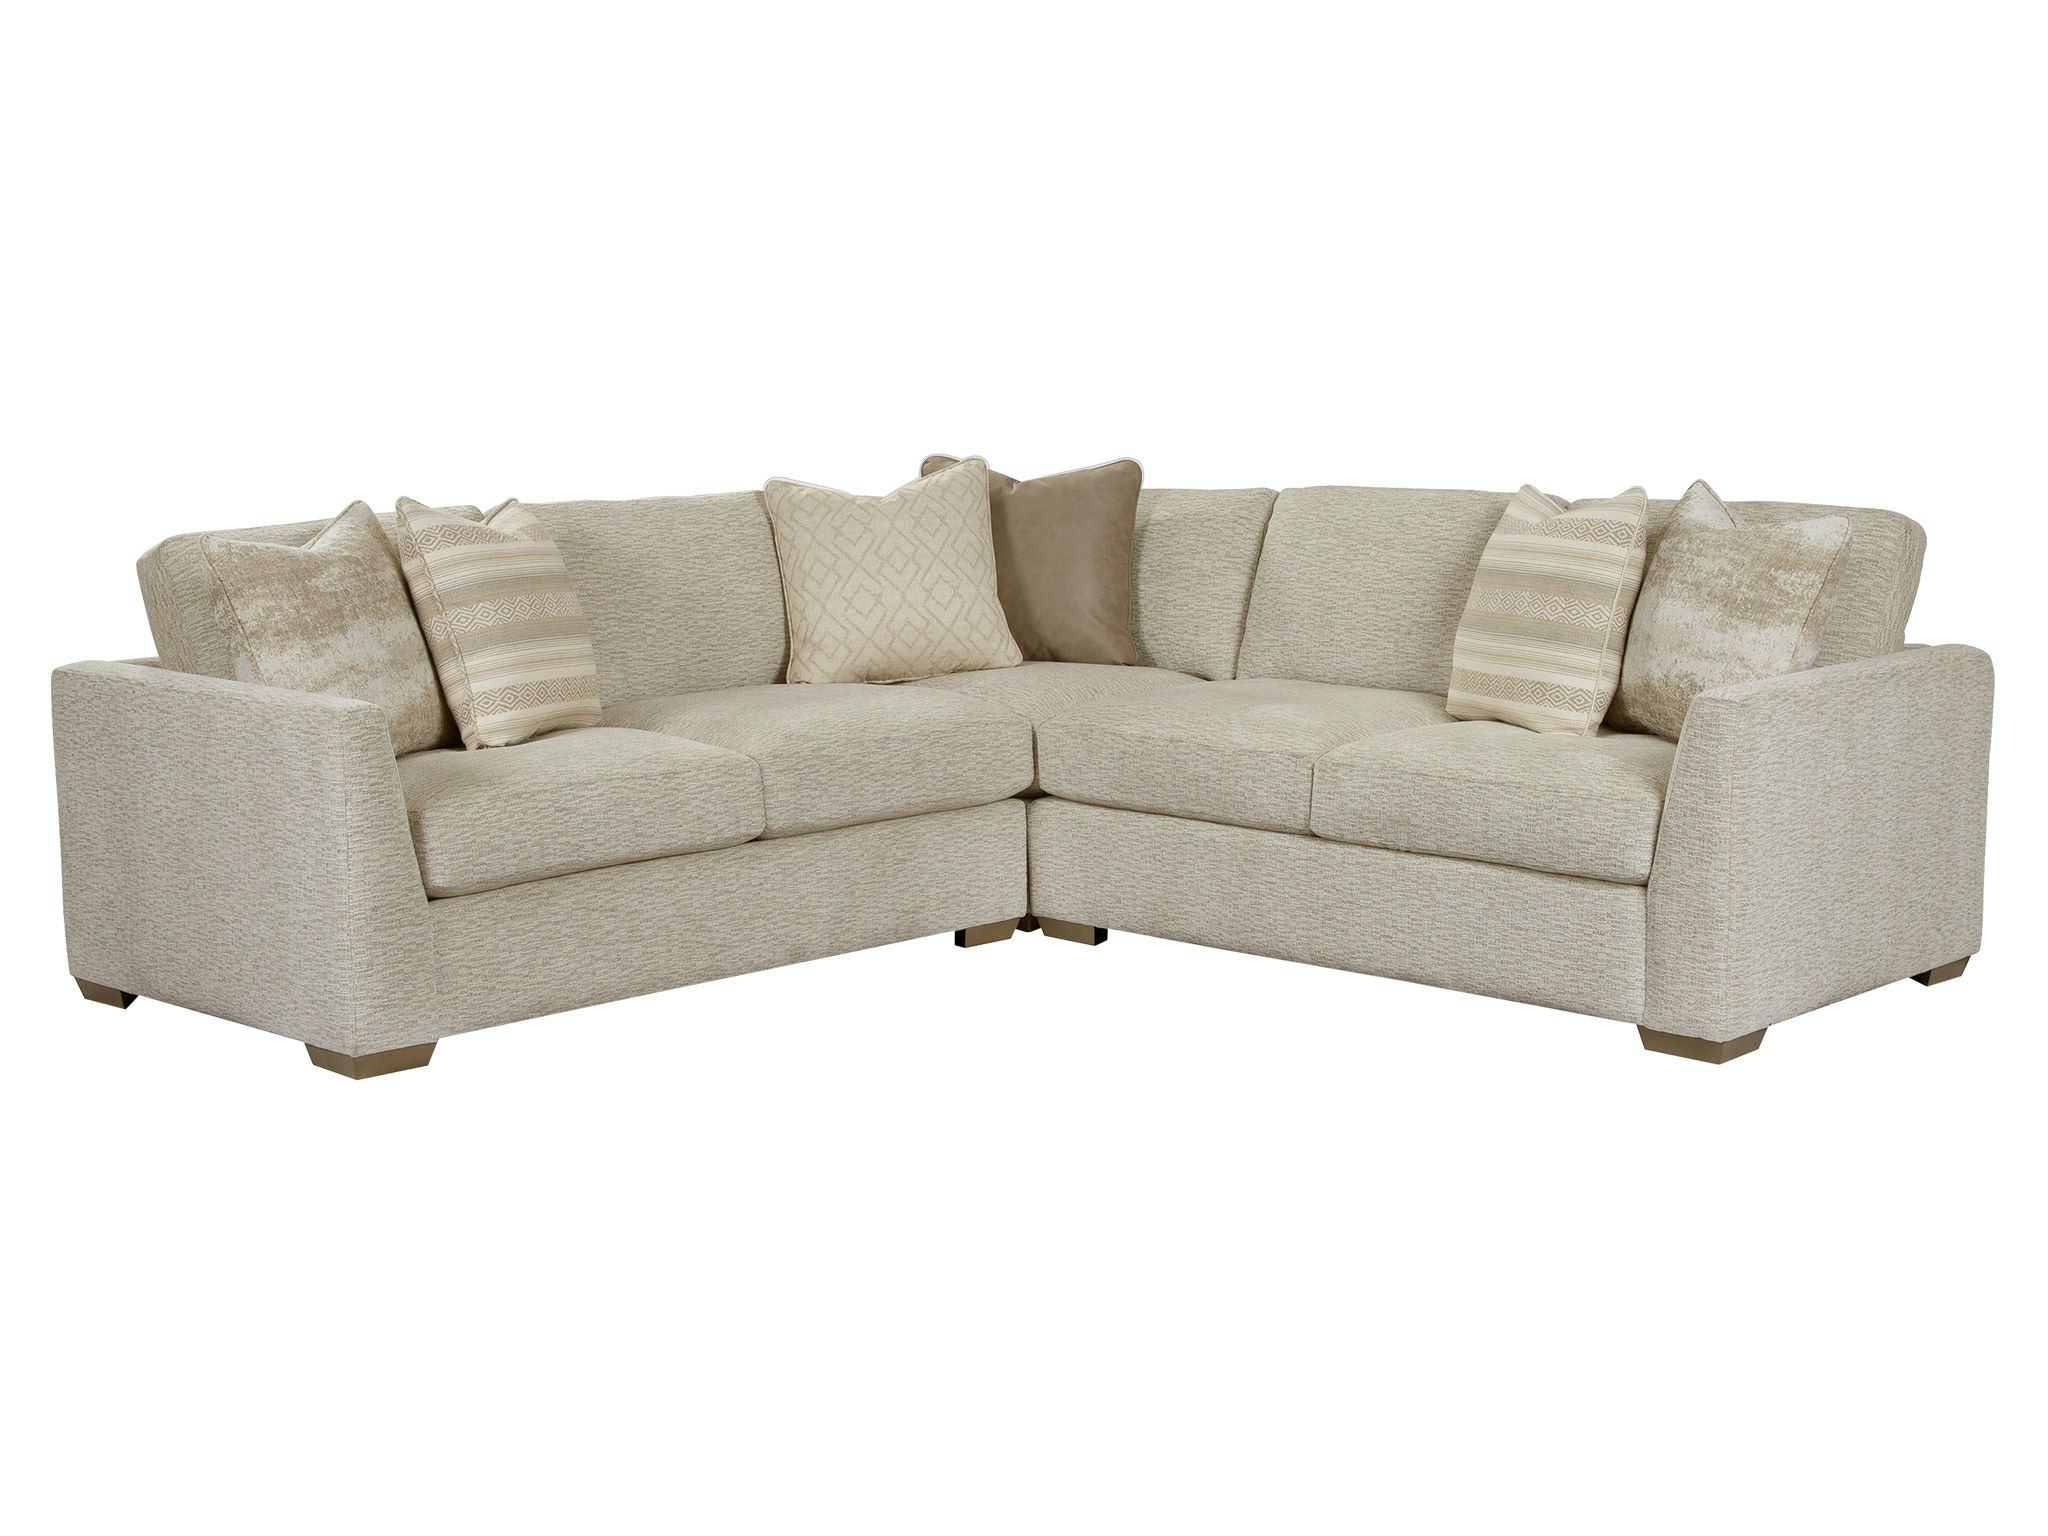 justin ii fabric reclining sectional sofa donate to goodwill living room sectionals brashears branson mo berryville ar